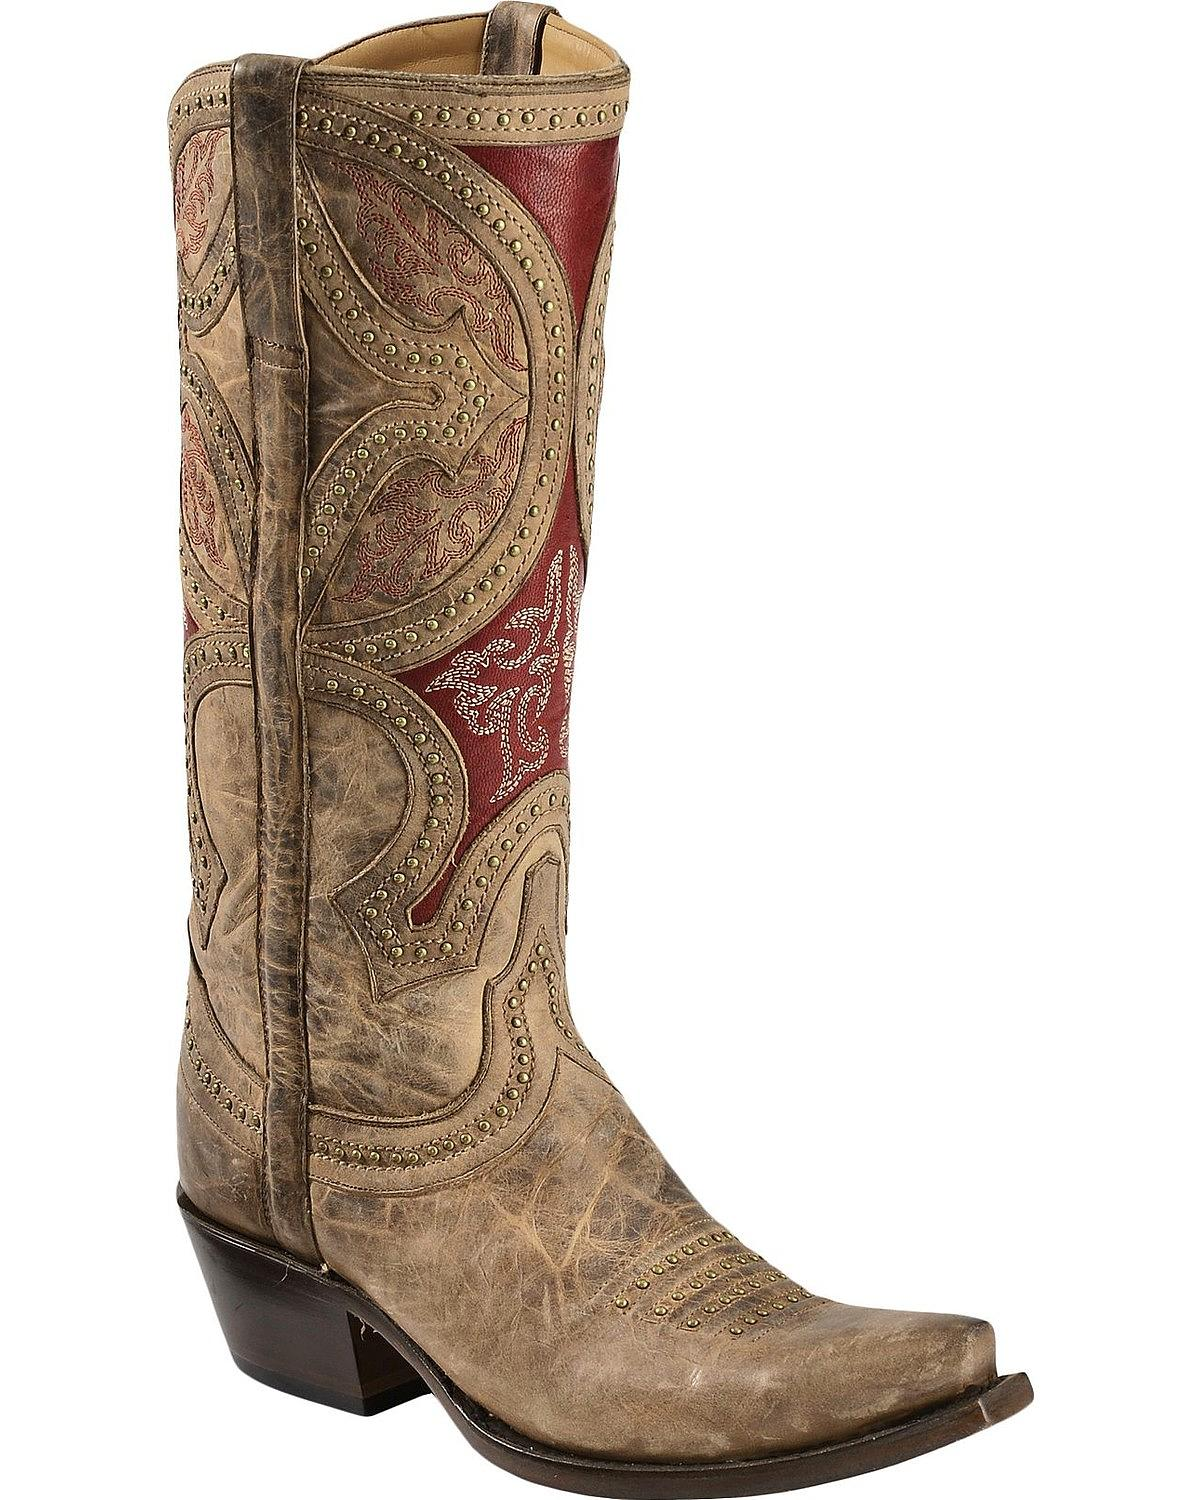 Cool Lucchese Womenu0026#39;s Zita Antique Red Python Ankle Boots - Square Toe | Sheplers